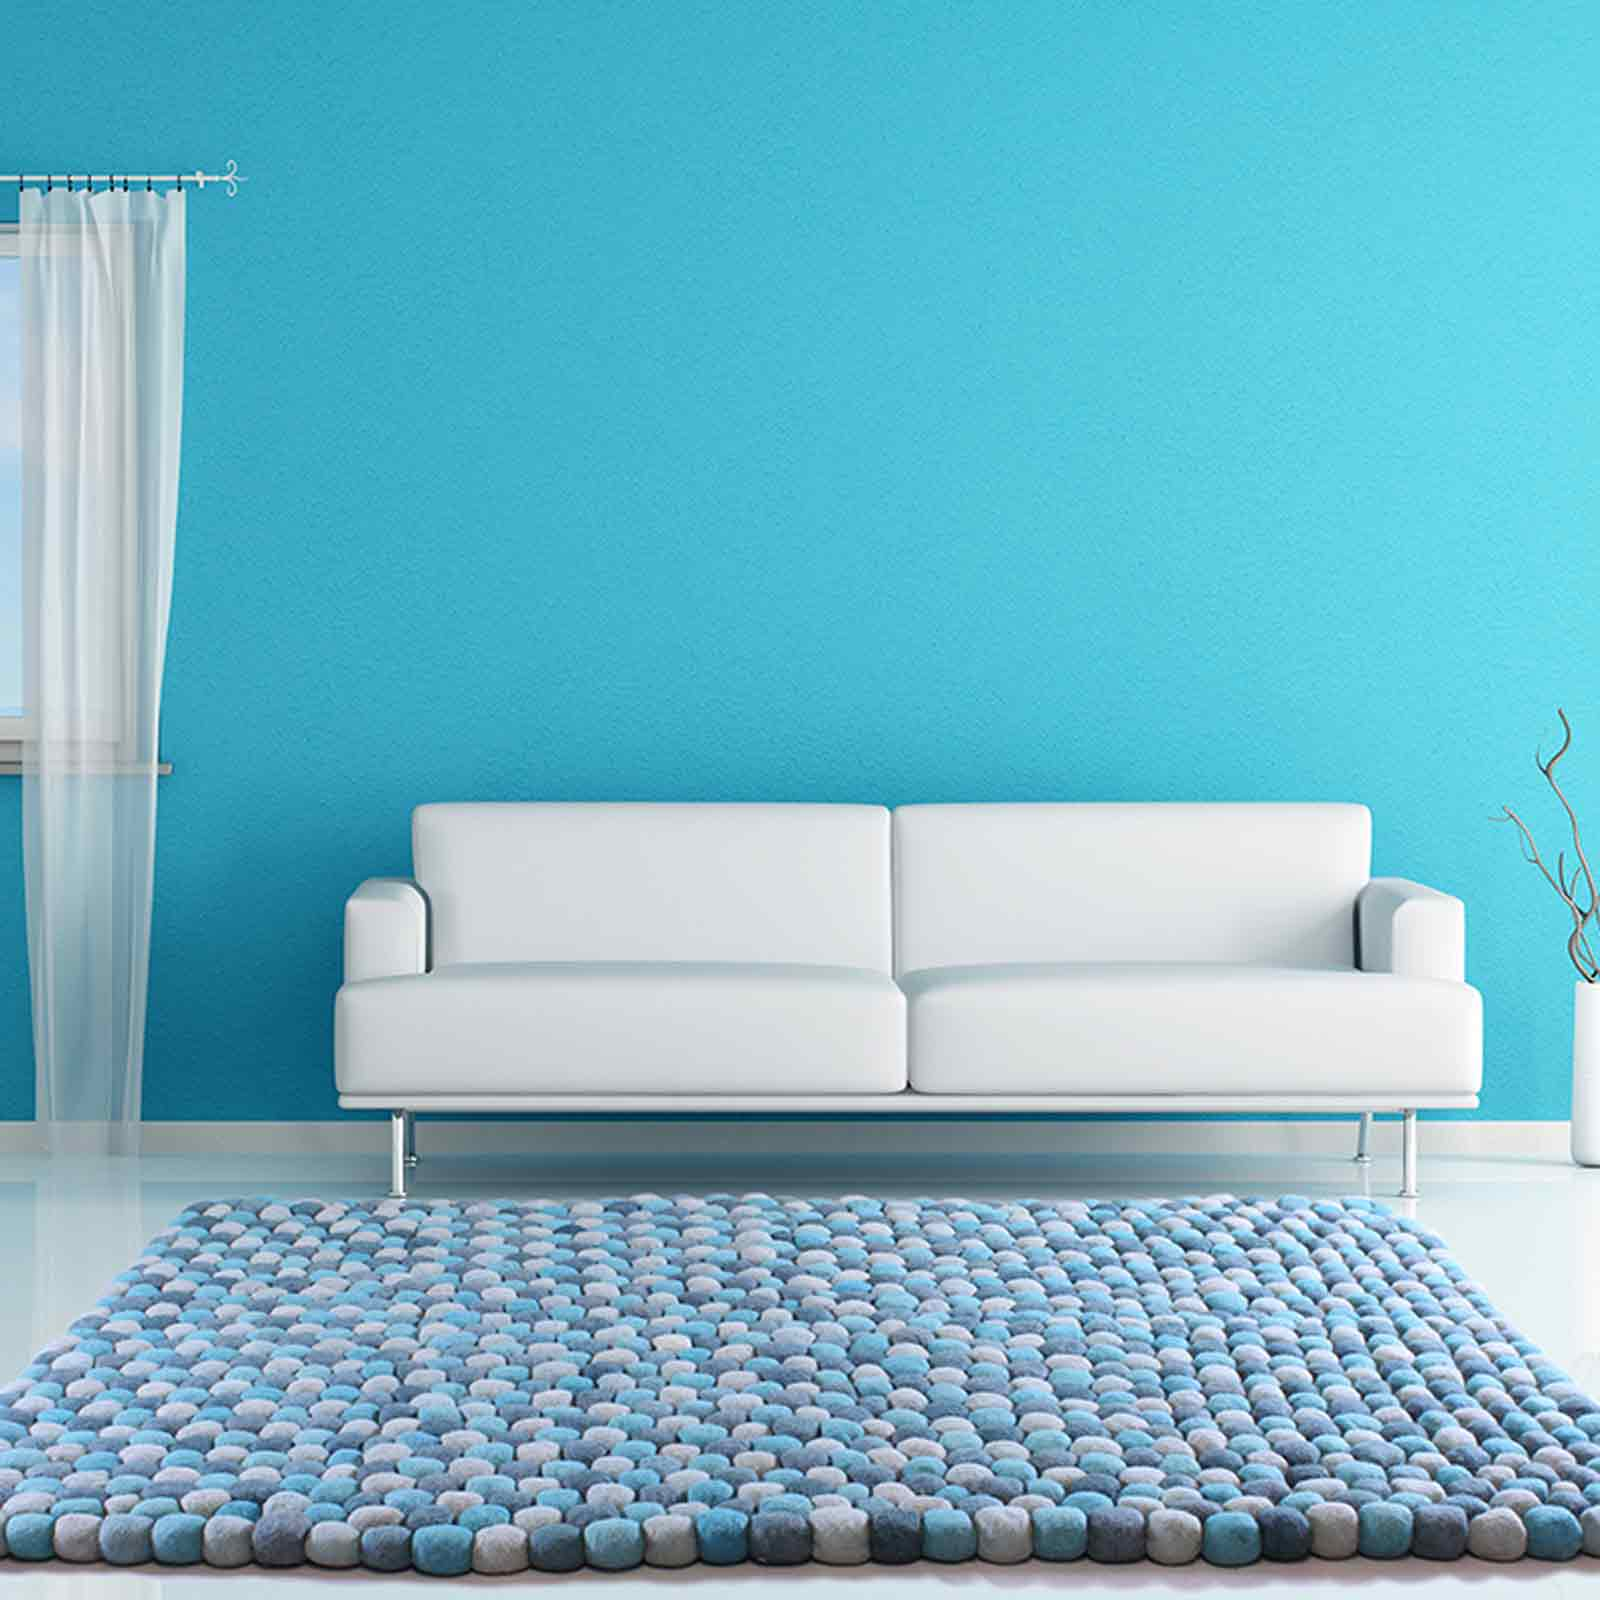 Pebble Rugs in Teal Blue